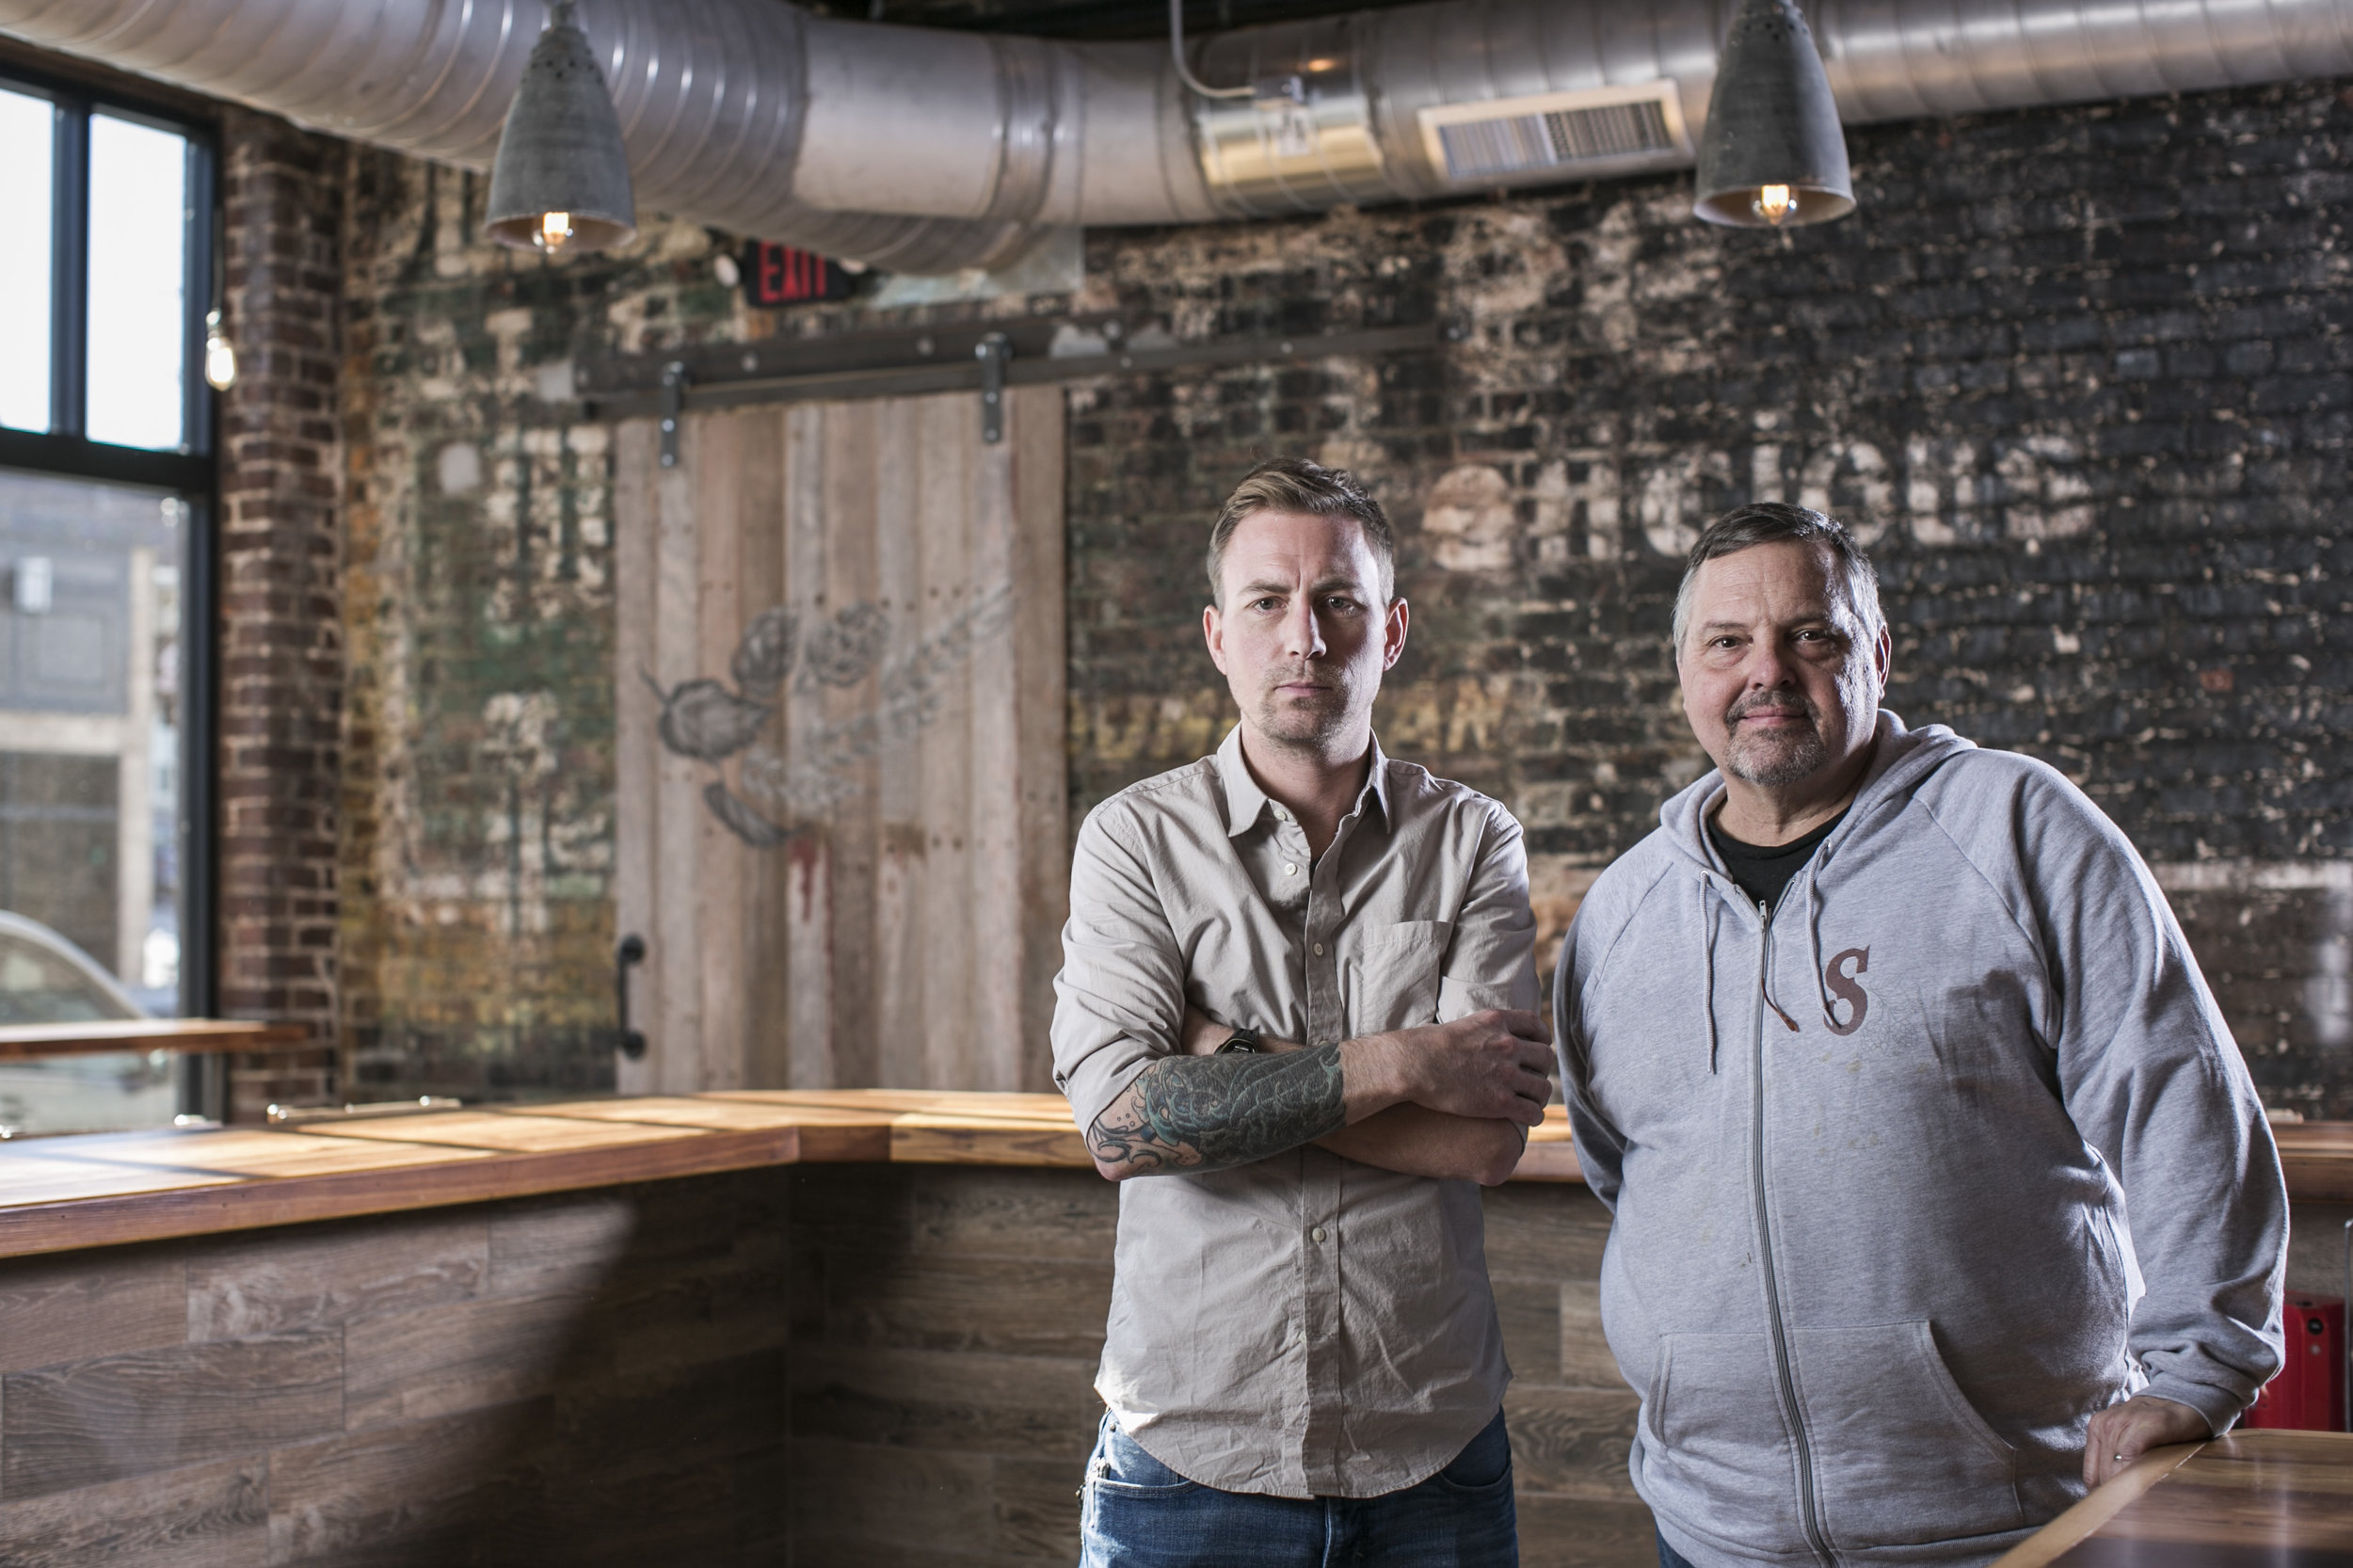 Scott Stephens, left, and John Fahrer, owners of Scriptown Brewing Company located at 3922 Farnam St, Omaha, NE 68131